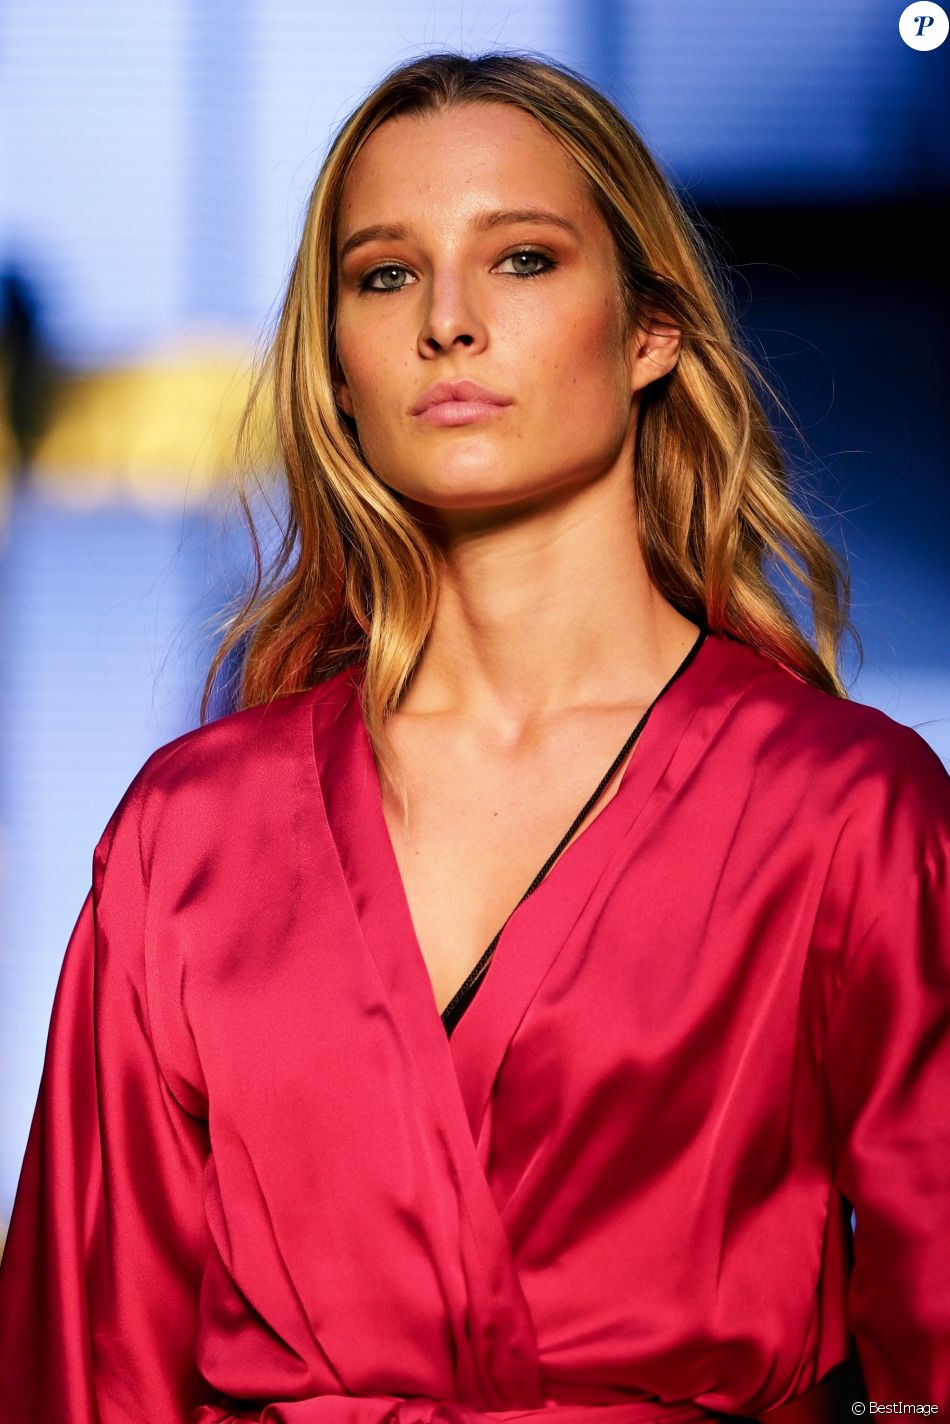 "Ilona Smet en coulisses - 10e édition du ""Etam Live Show"" (Etam Lingerie) lors de la Fashion Week à Paris, France, le 26 septembre 2017. Rachid Bellak/Bestimage"